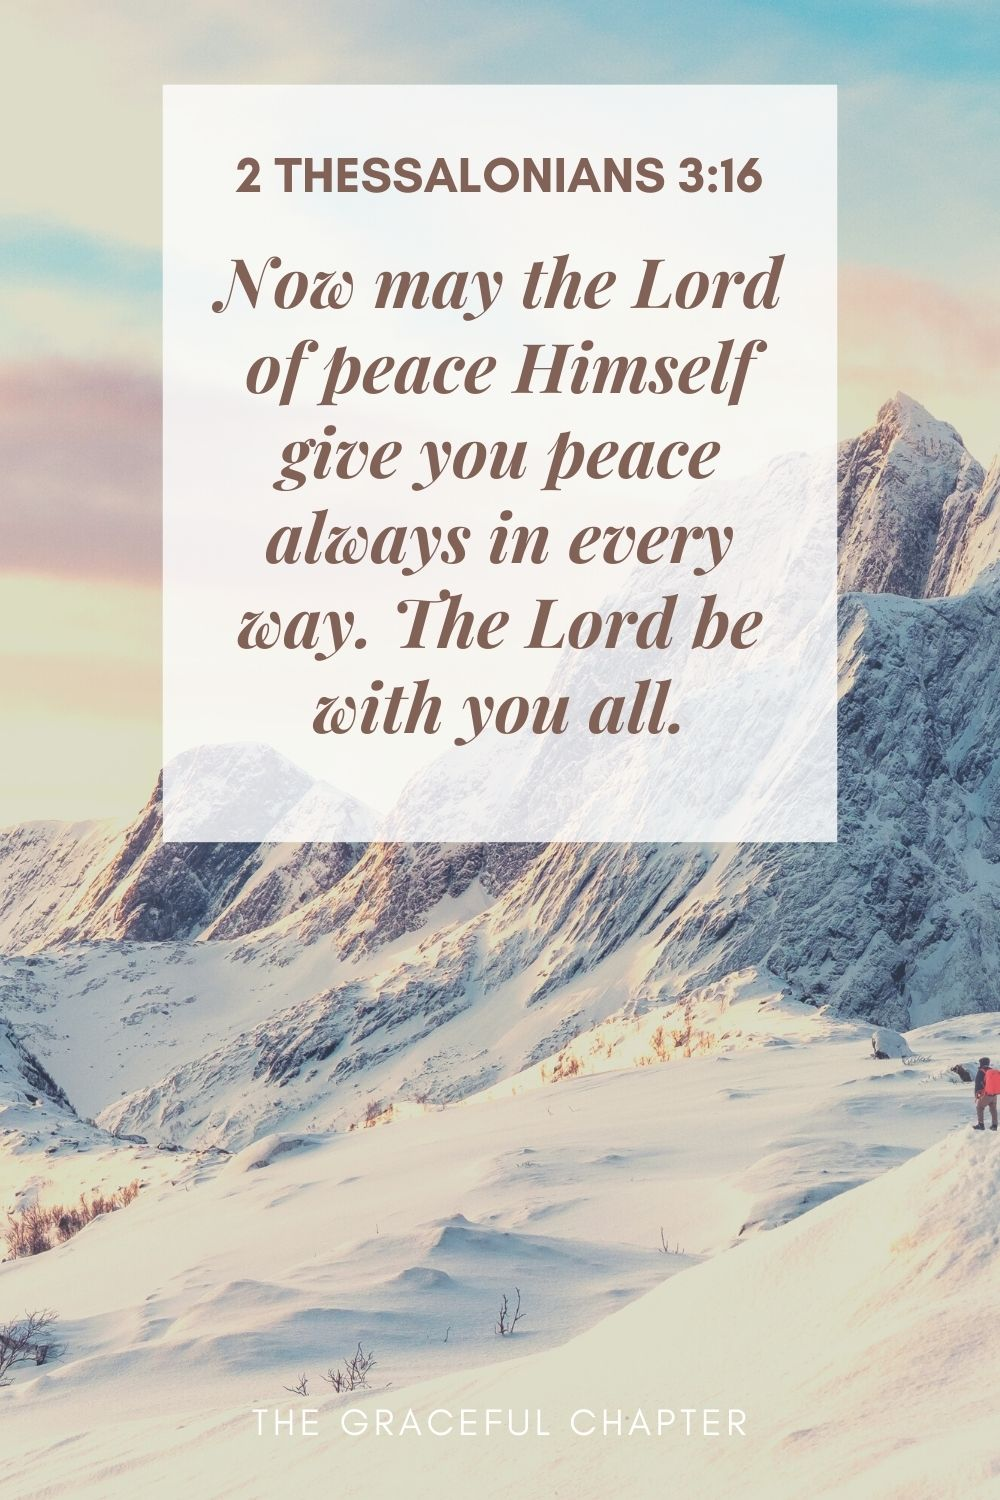 Now may the Lord of peace Himself give you peace always in every way. The Lord be with you all. 2 Thessalonians 3:16